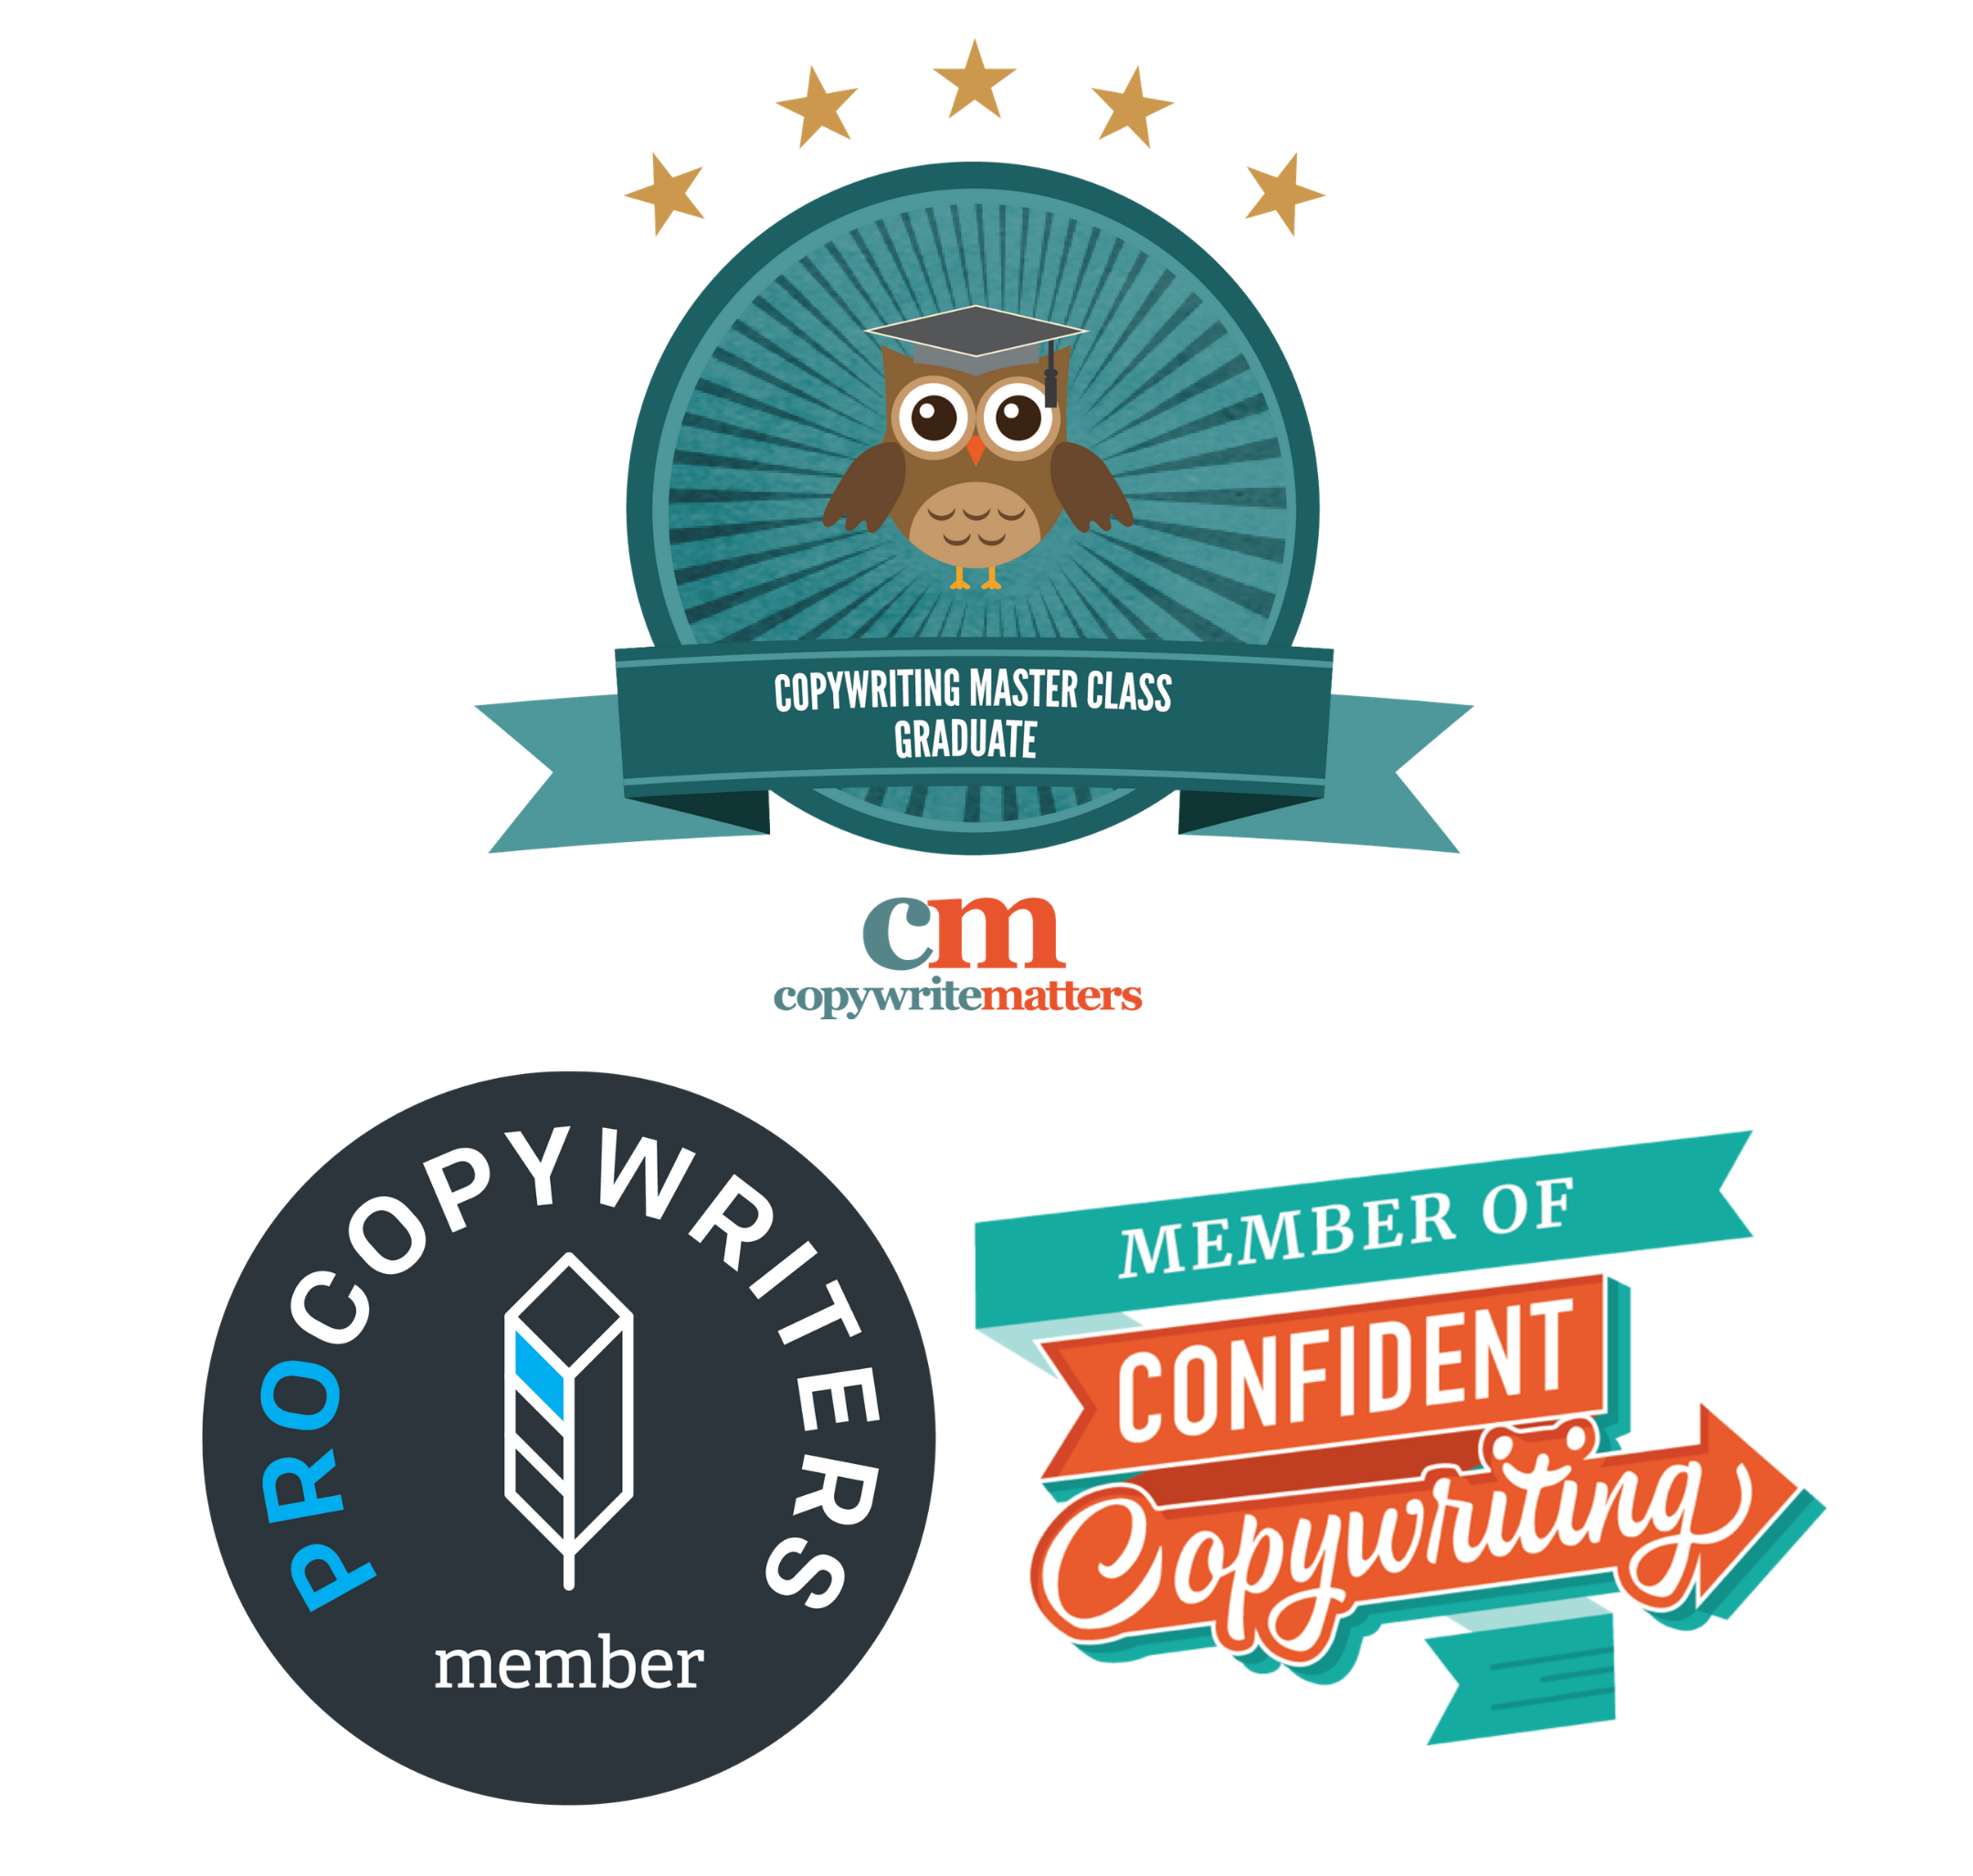 """Image with three logos: Pro Copywriters member badge. A dark grey circle with white and blue text that reads """"Pro Copywriters Member"""" and a white feather. Copywriting Masterclass Graduate Badge. A circular badge with a cartoon of an owl with 5 gold stars above it. Below the owl are the words """"Copywriting Masterclass Graduate"""". Below this is the logo for Copywrite Matters, the business that runs the course. Confident Copywriting Member badge. The words """"Member of Confident Copywriting"""" on a colourful background."""